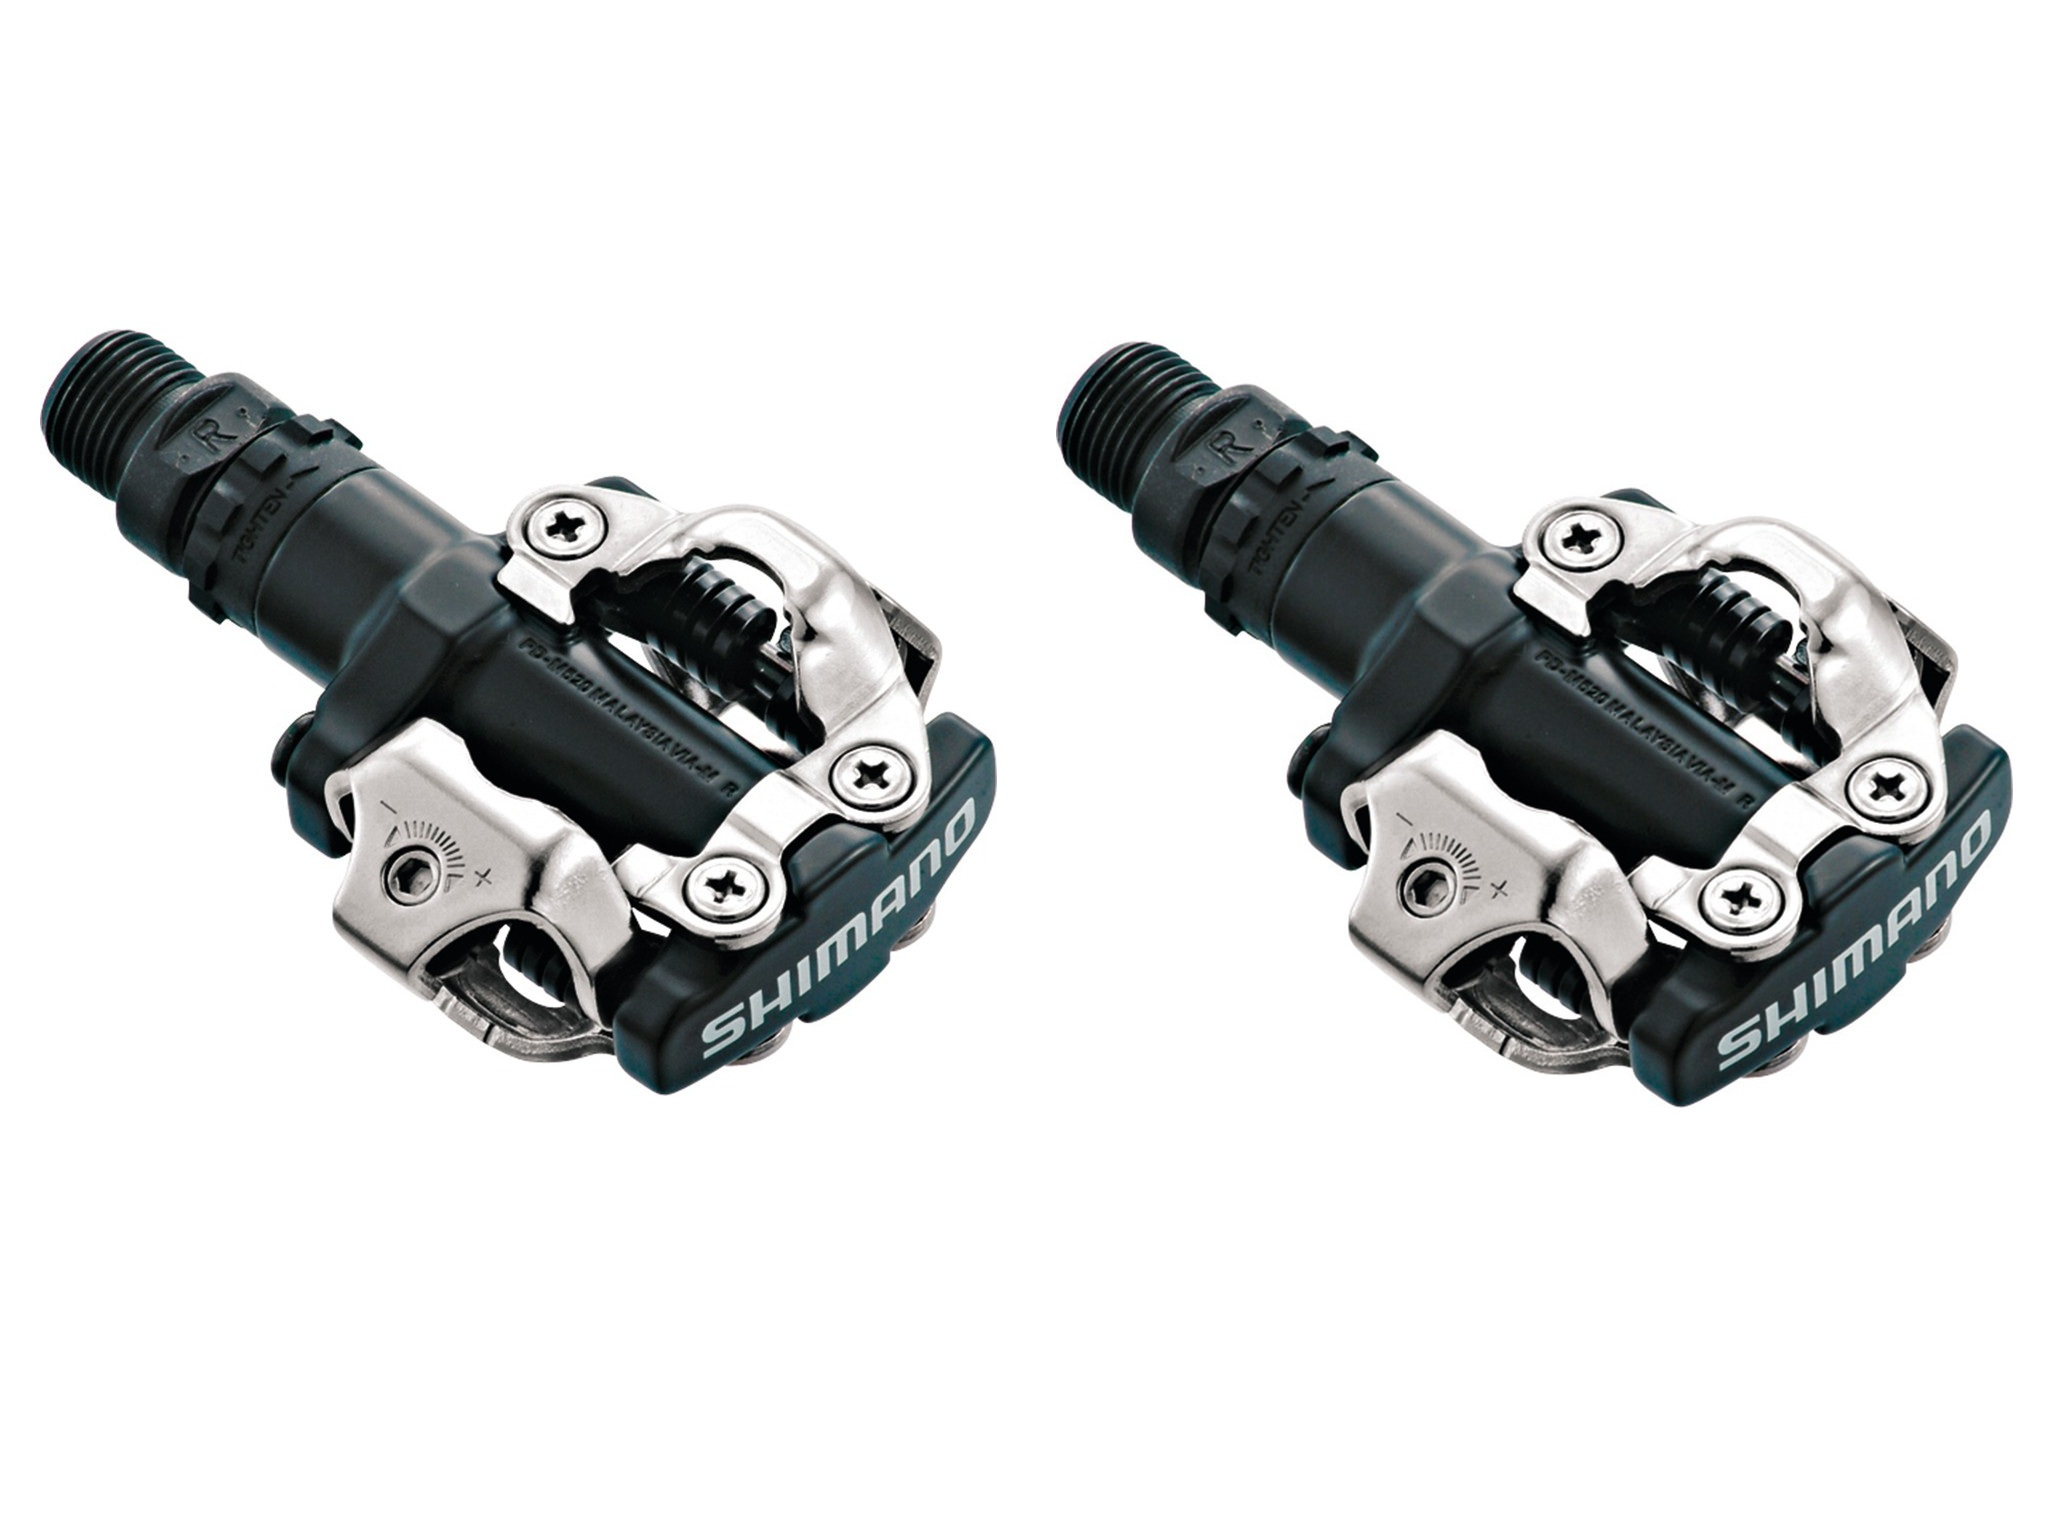 Pedale Shimano PD-M 520